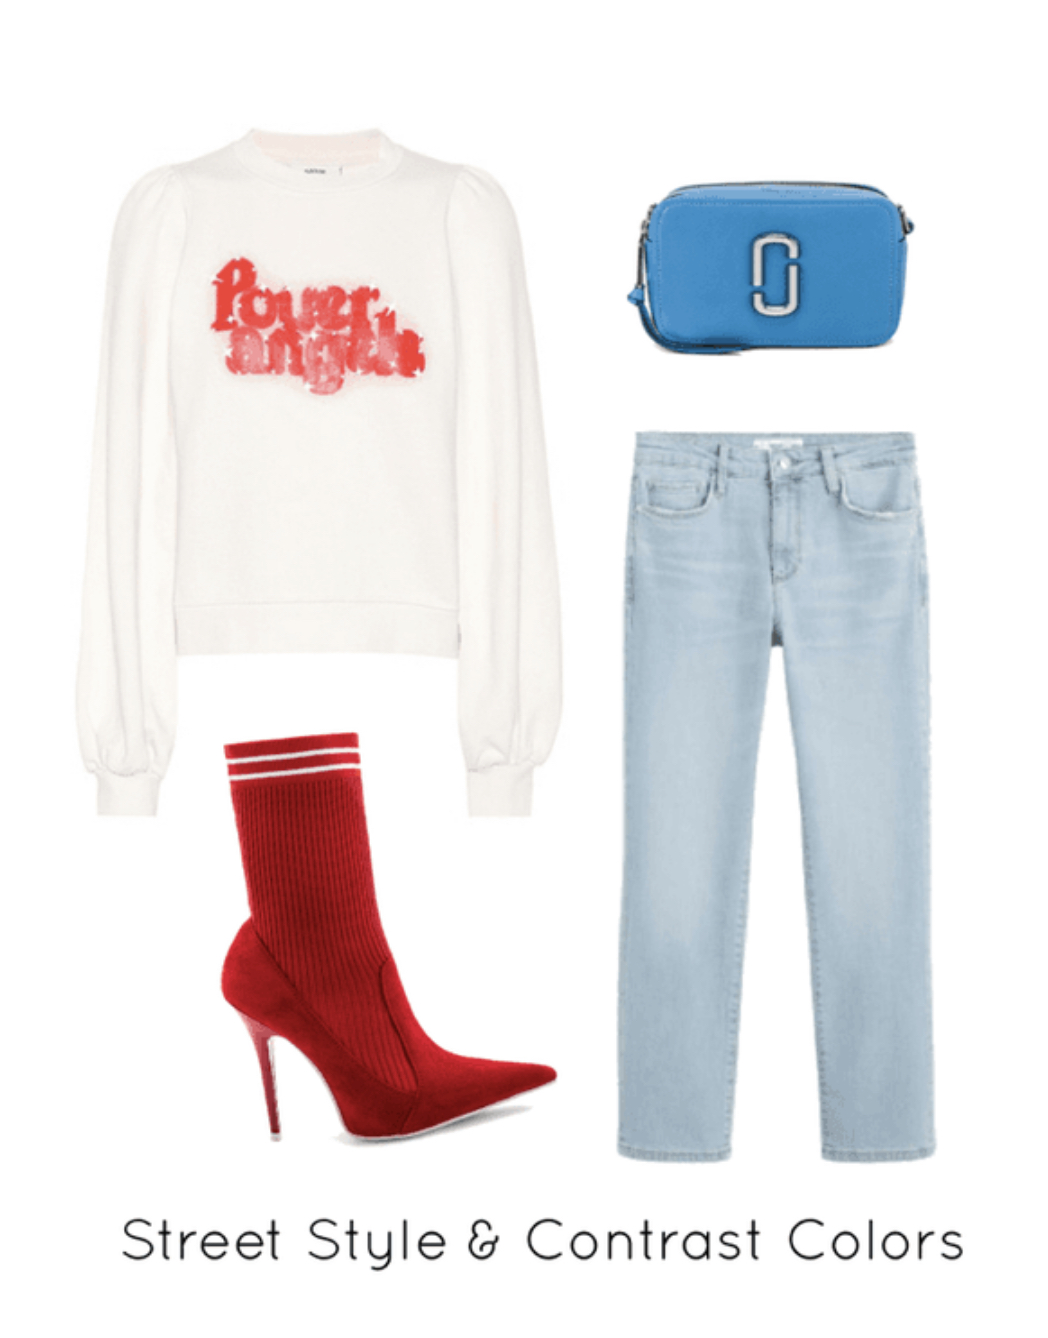 Red Sock Boots and Blue Jeans Outfit.